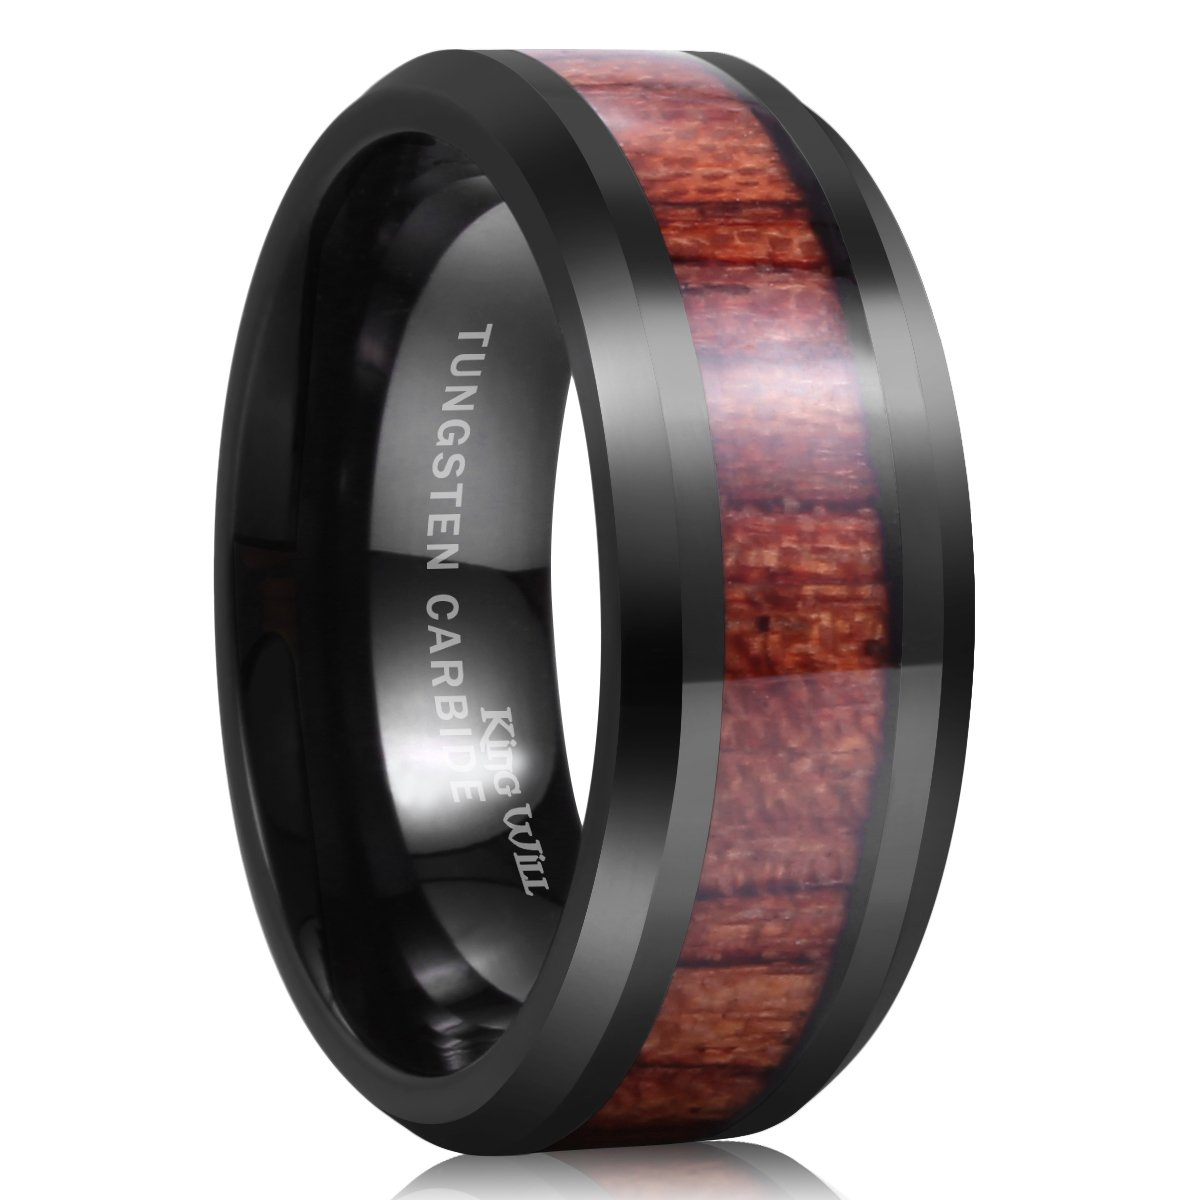 King Will NATURE 8mm Black Tungsten Carbide Ring Wood Inlay Wedding Band High Polished Finish Comfort Fit10.5 by King Will